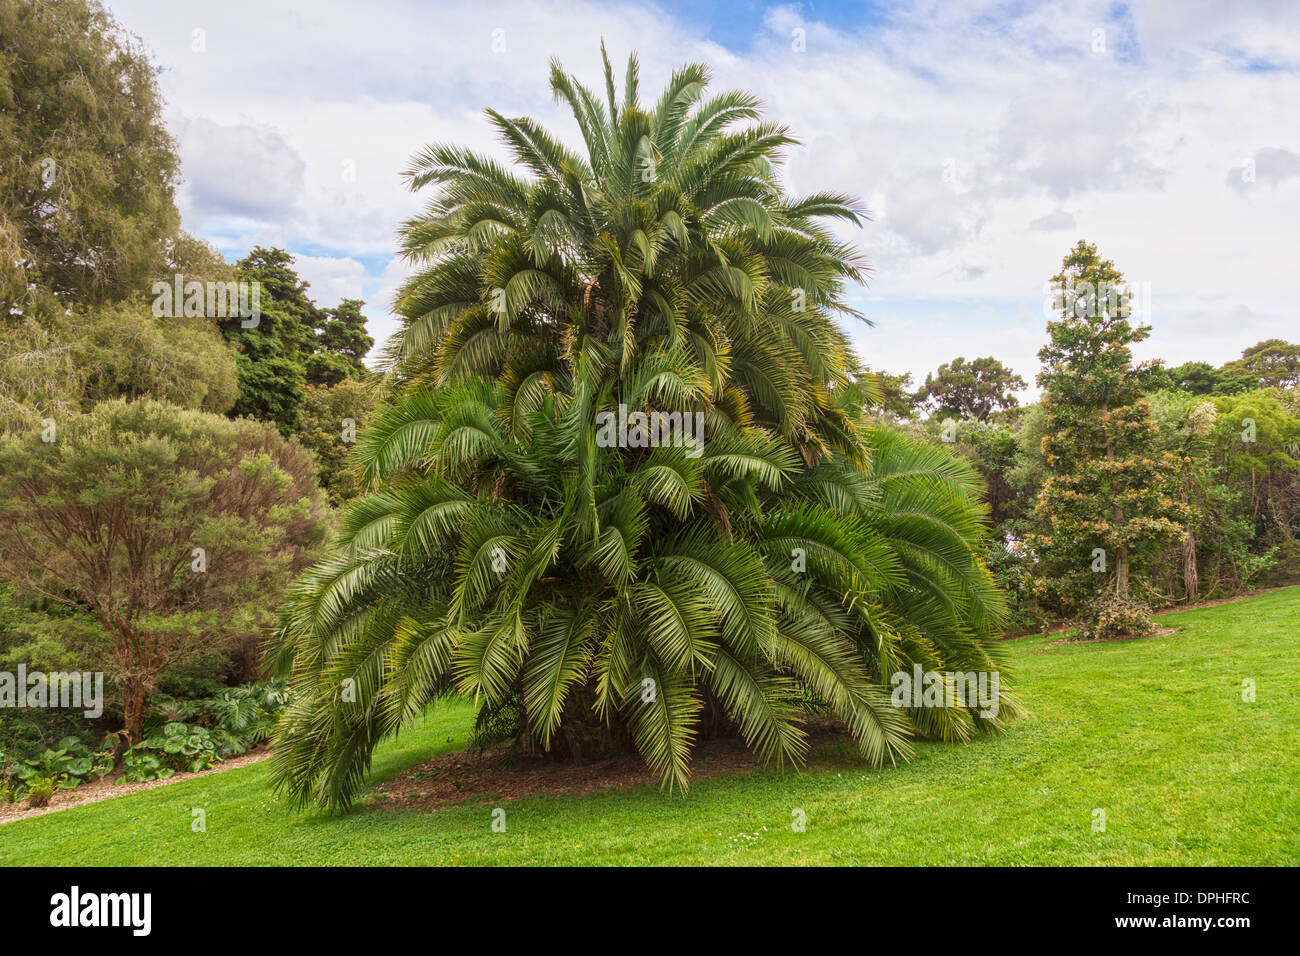 An unidentified palm tree in Auckland Botanic Gardens, which looks like a clumped growth of Phoenix Canieriensis. - Stock Image